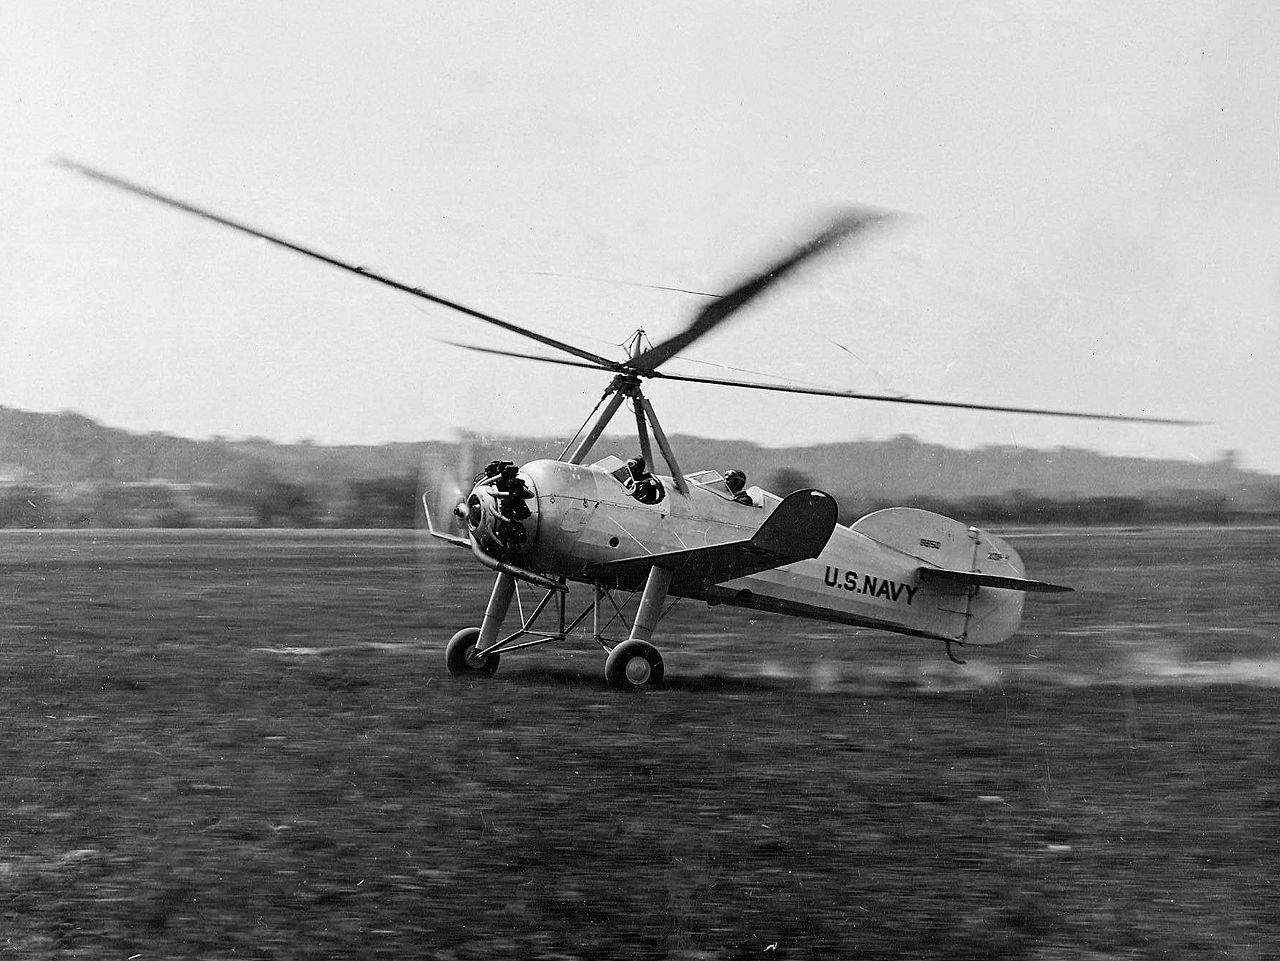 Pitcairn_XOP-1_autogyro_taking_off_in_June_1931